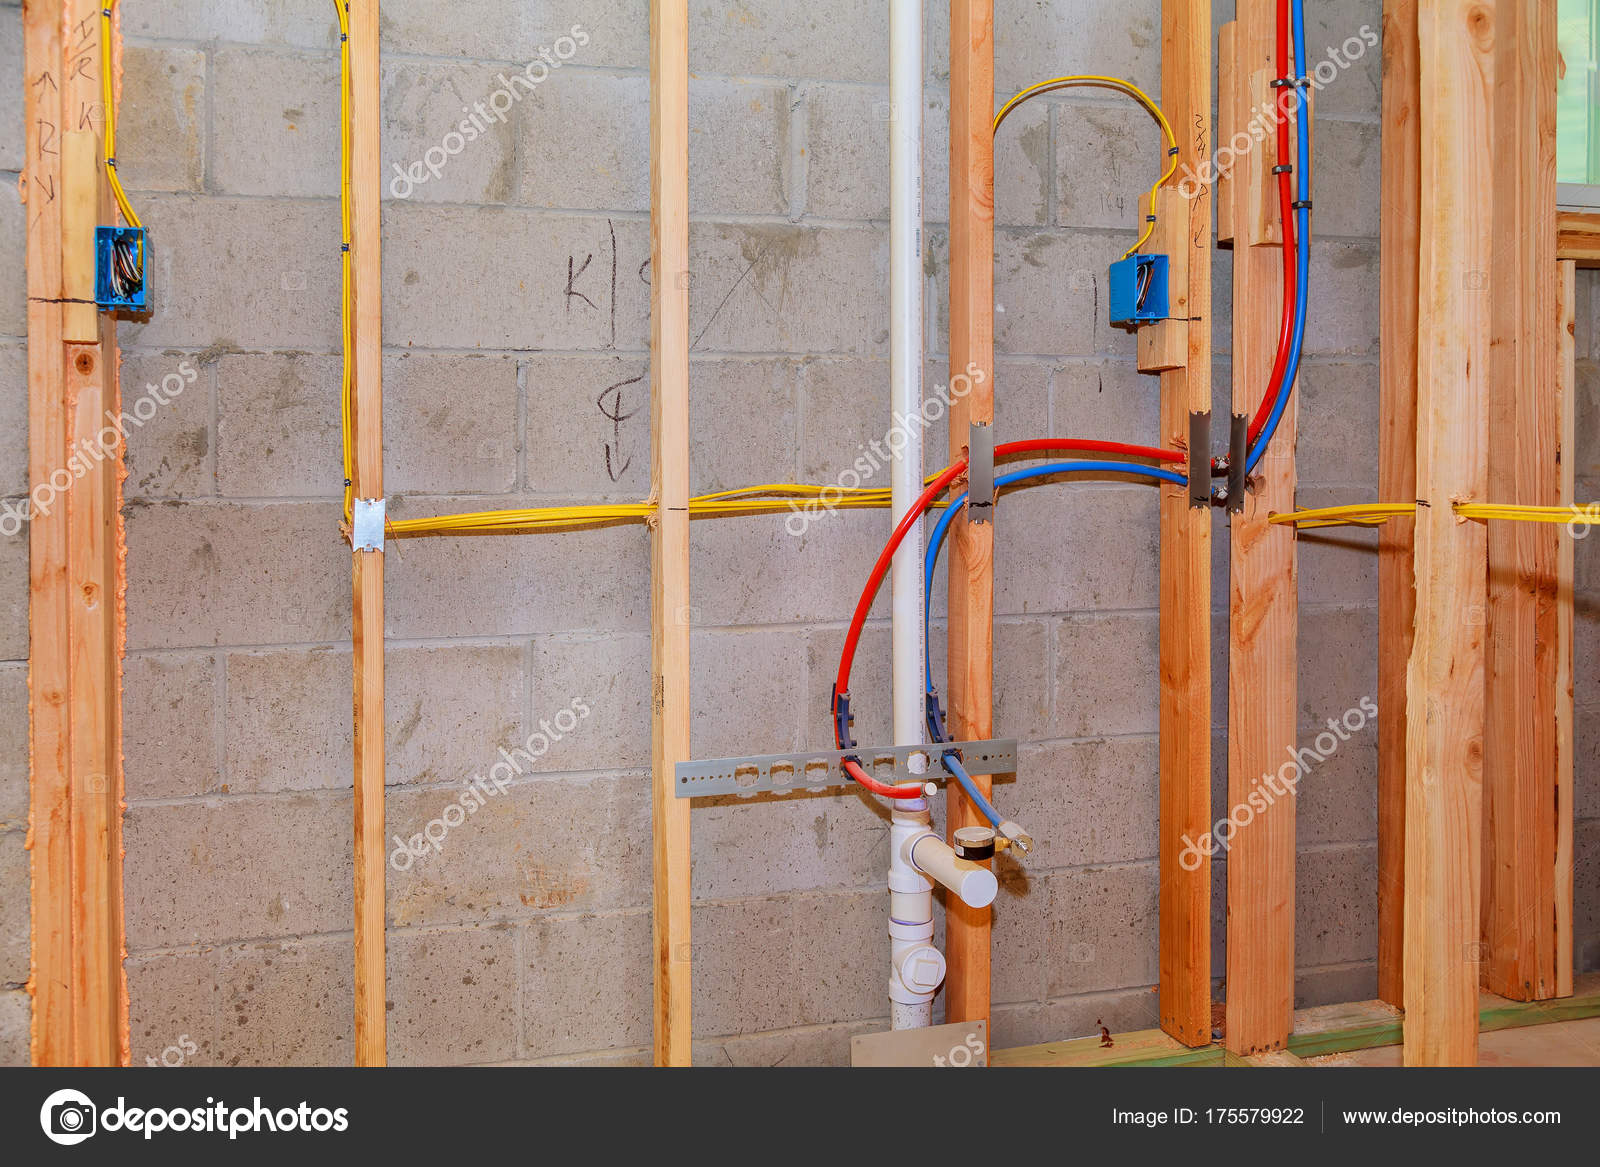 hight resolution of unfinished wood frame building or house stock photo